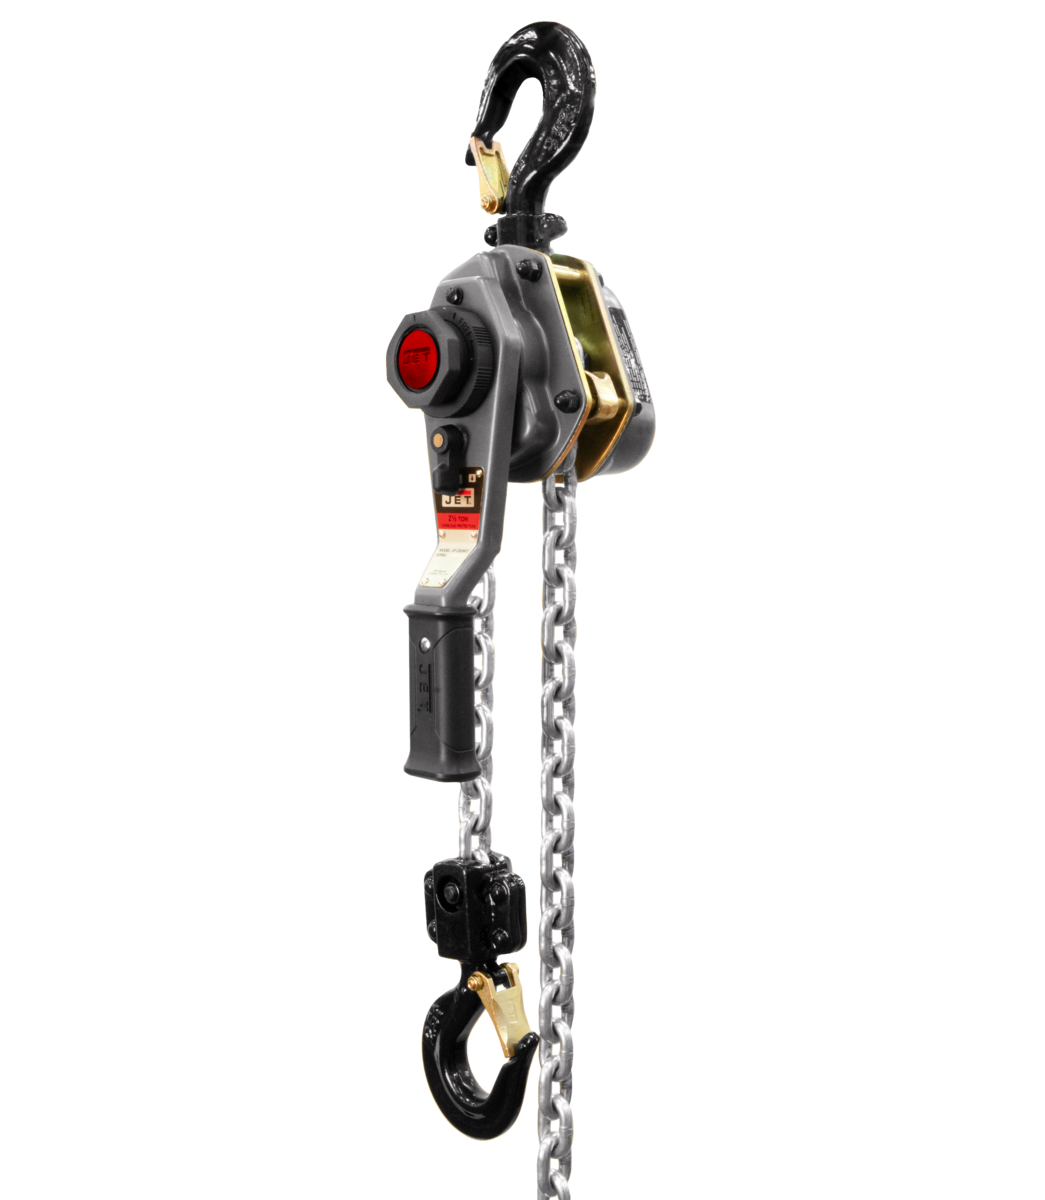 JLH-250WO-20 2-1/2 Ton Lever Hoist, 20' Lift with Overload Protection